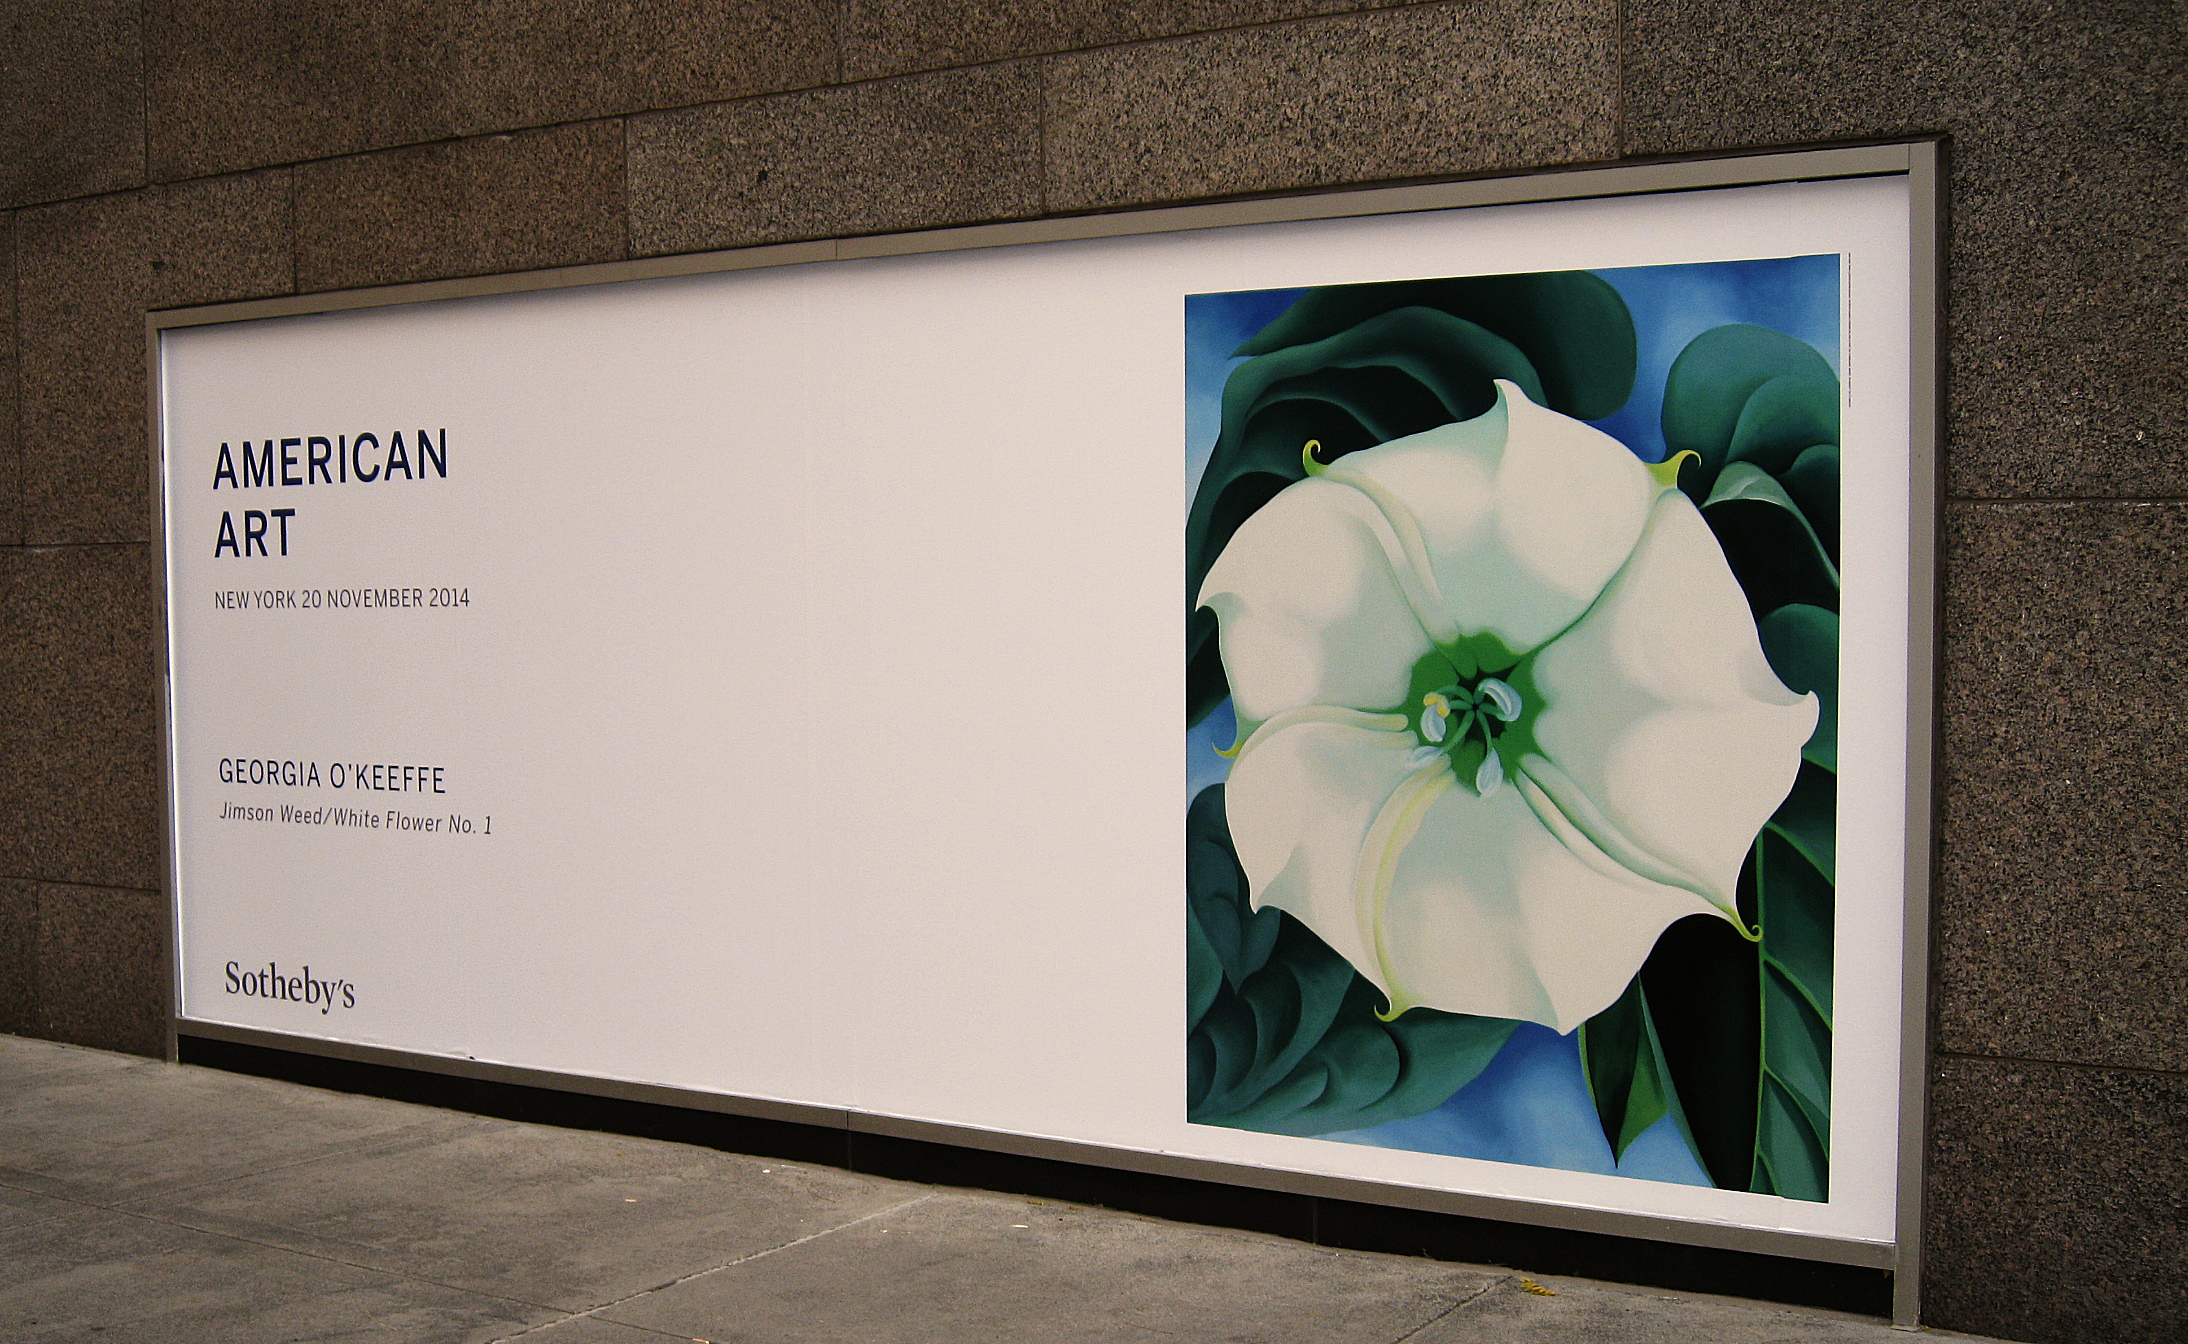 Georgia okeeffe soars at auction lotus editions georgiaokeeffe jimsonweed1 georgiaokeeffe sothebys mightylinksfo